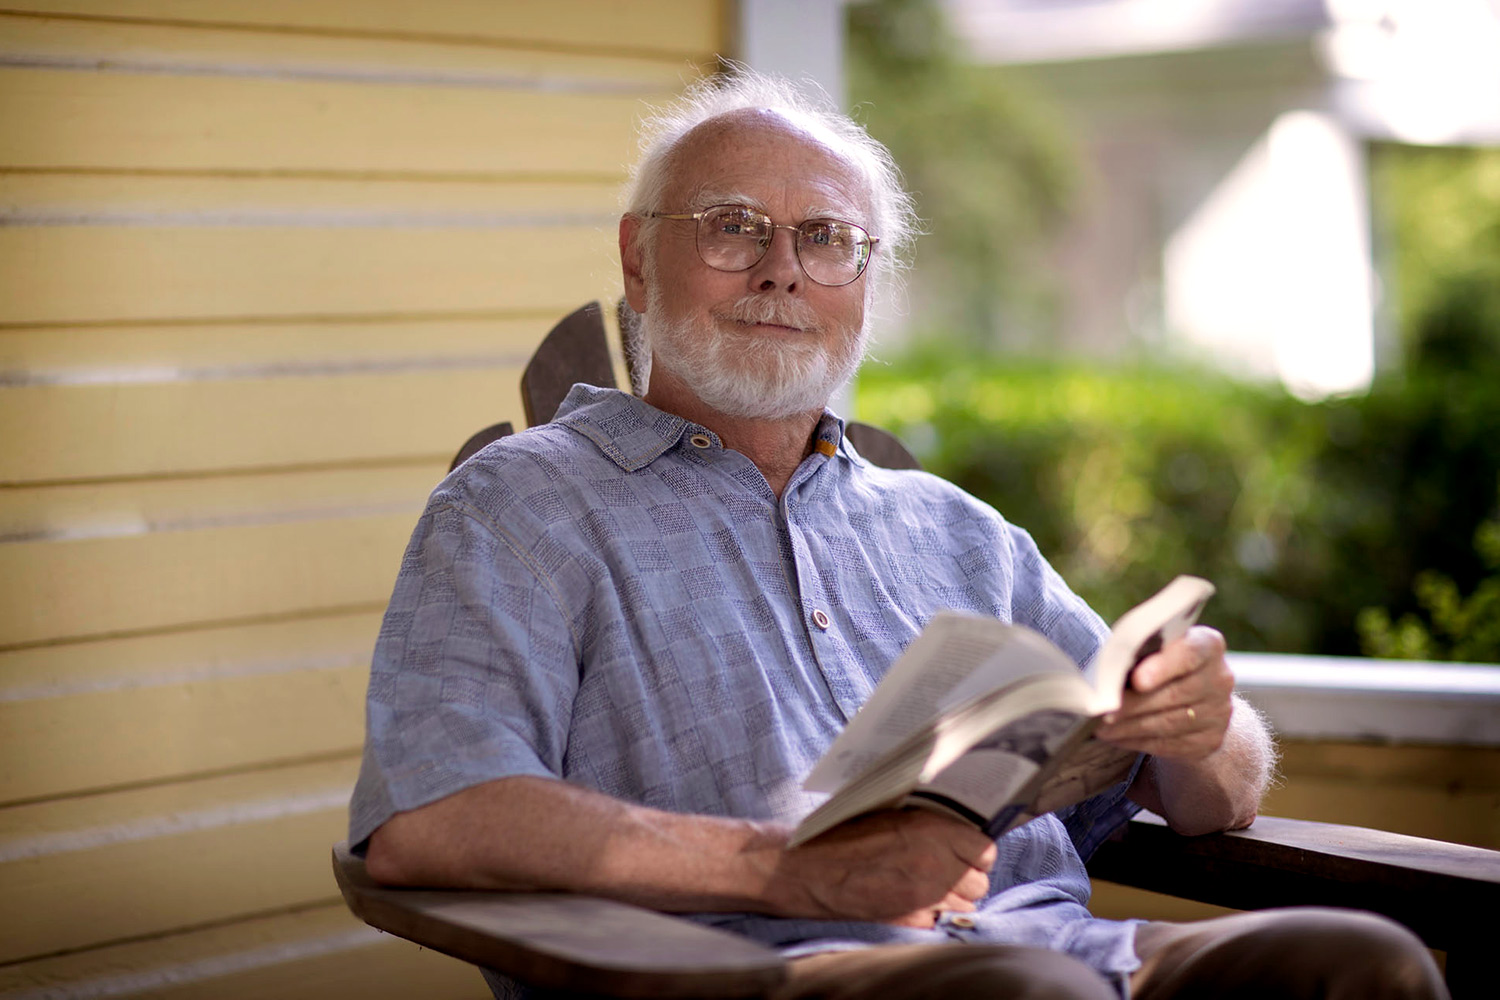 Steve Railton, on the English department faculty since 1973, specializes in American literature, including the work of William Faulkner.